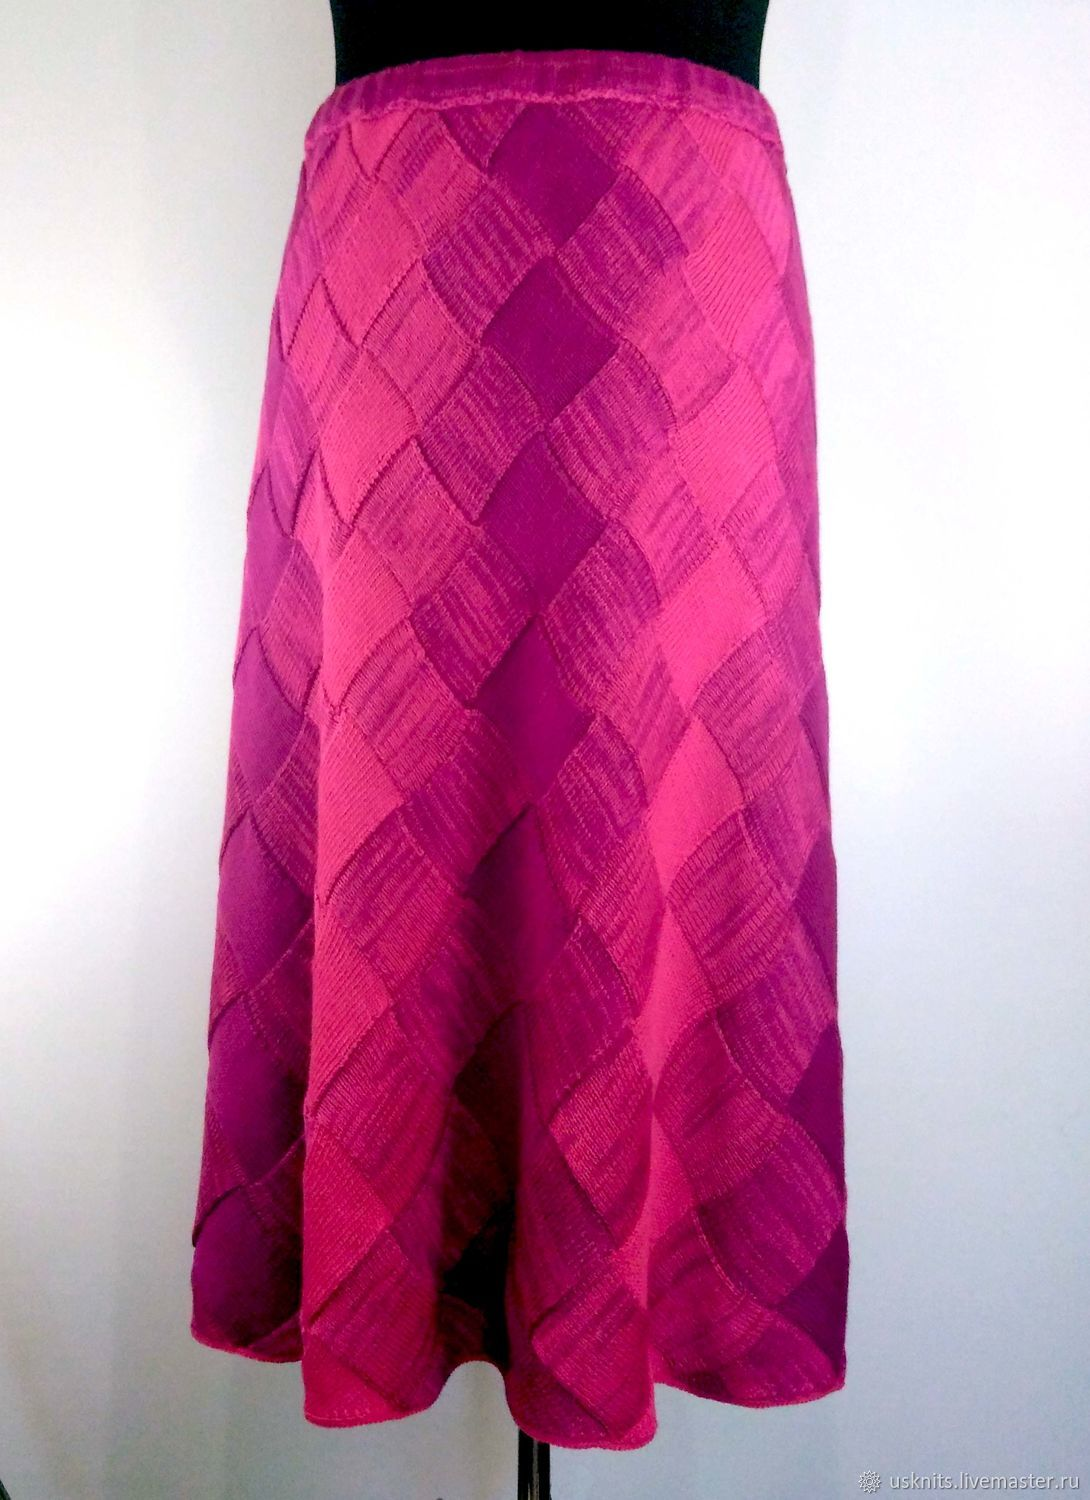 Knitted long skirt in size plus vertical stripes, Skirts, Korolev,  Фото №1